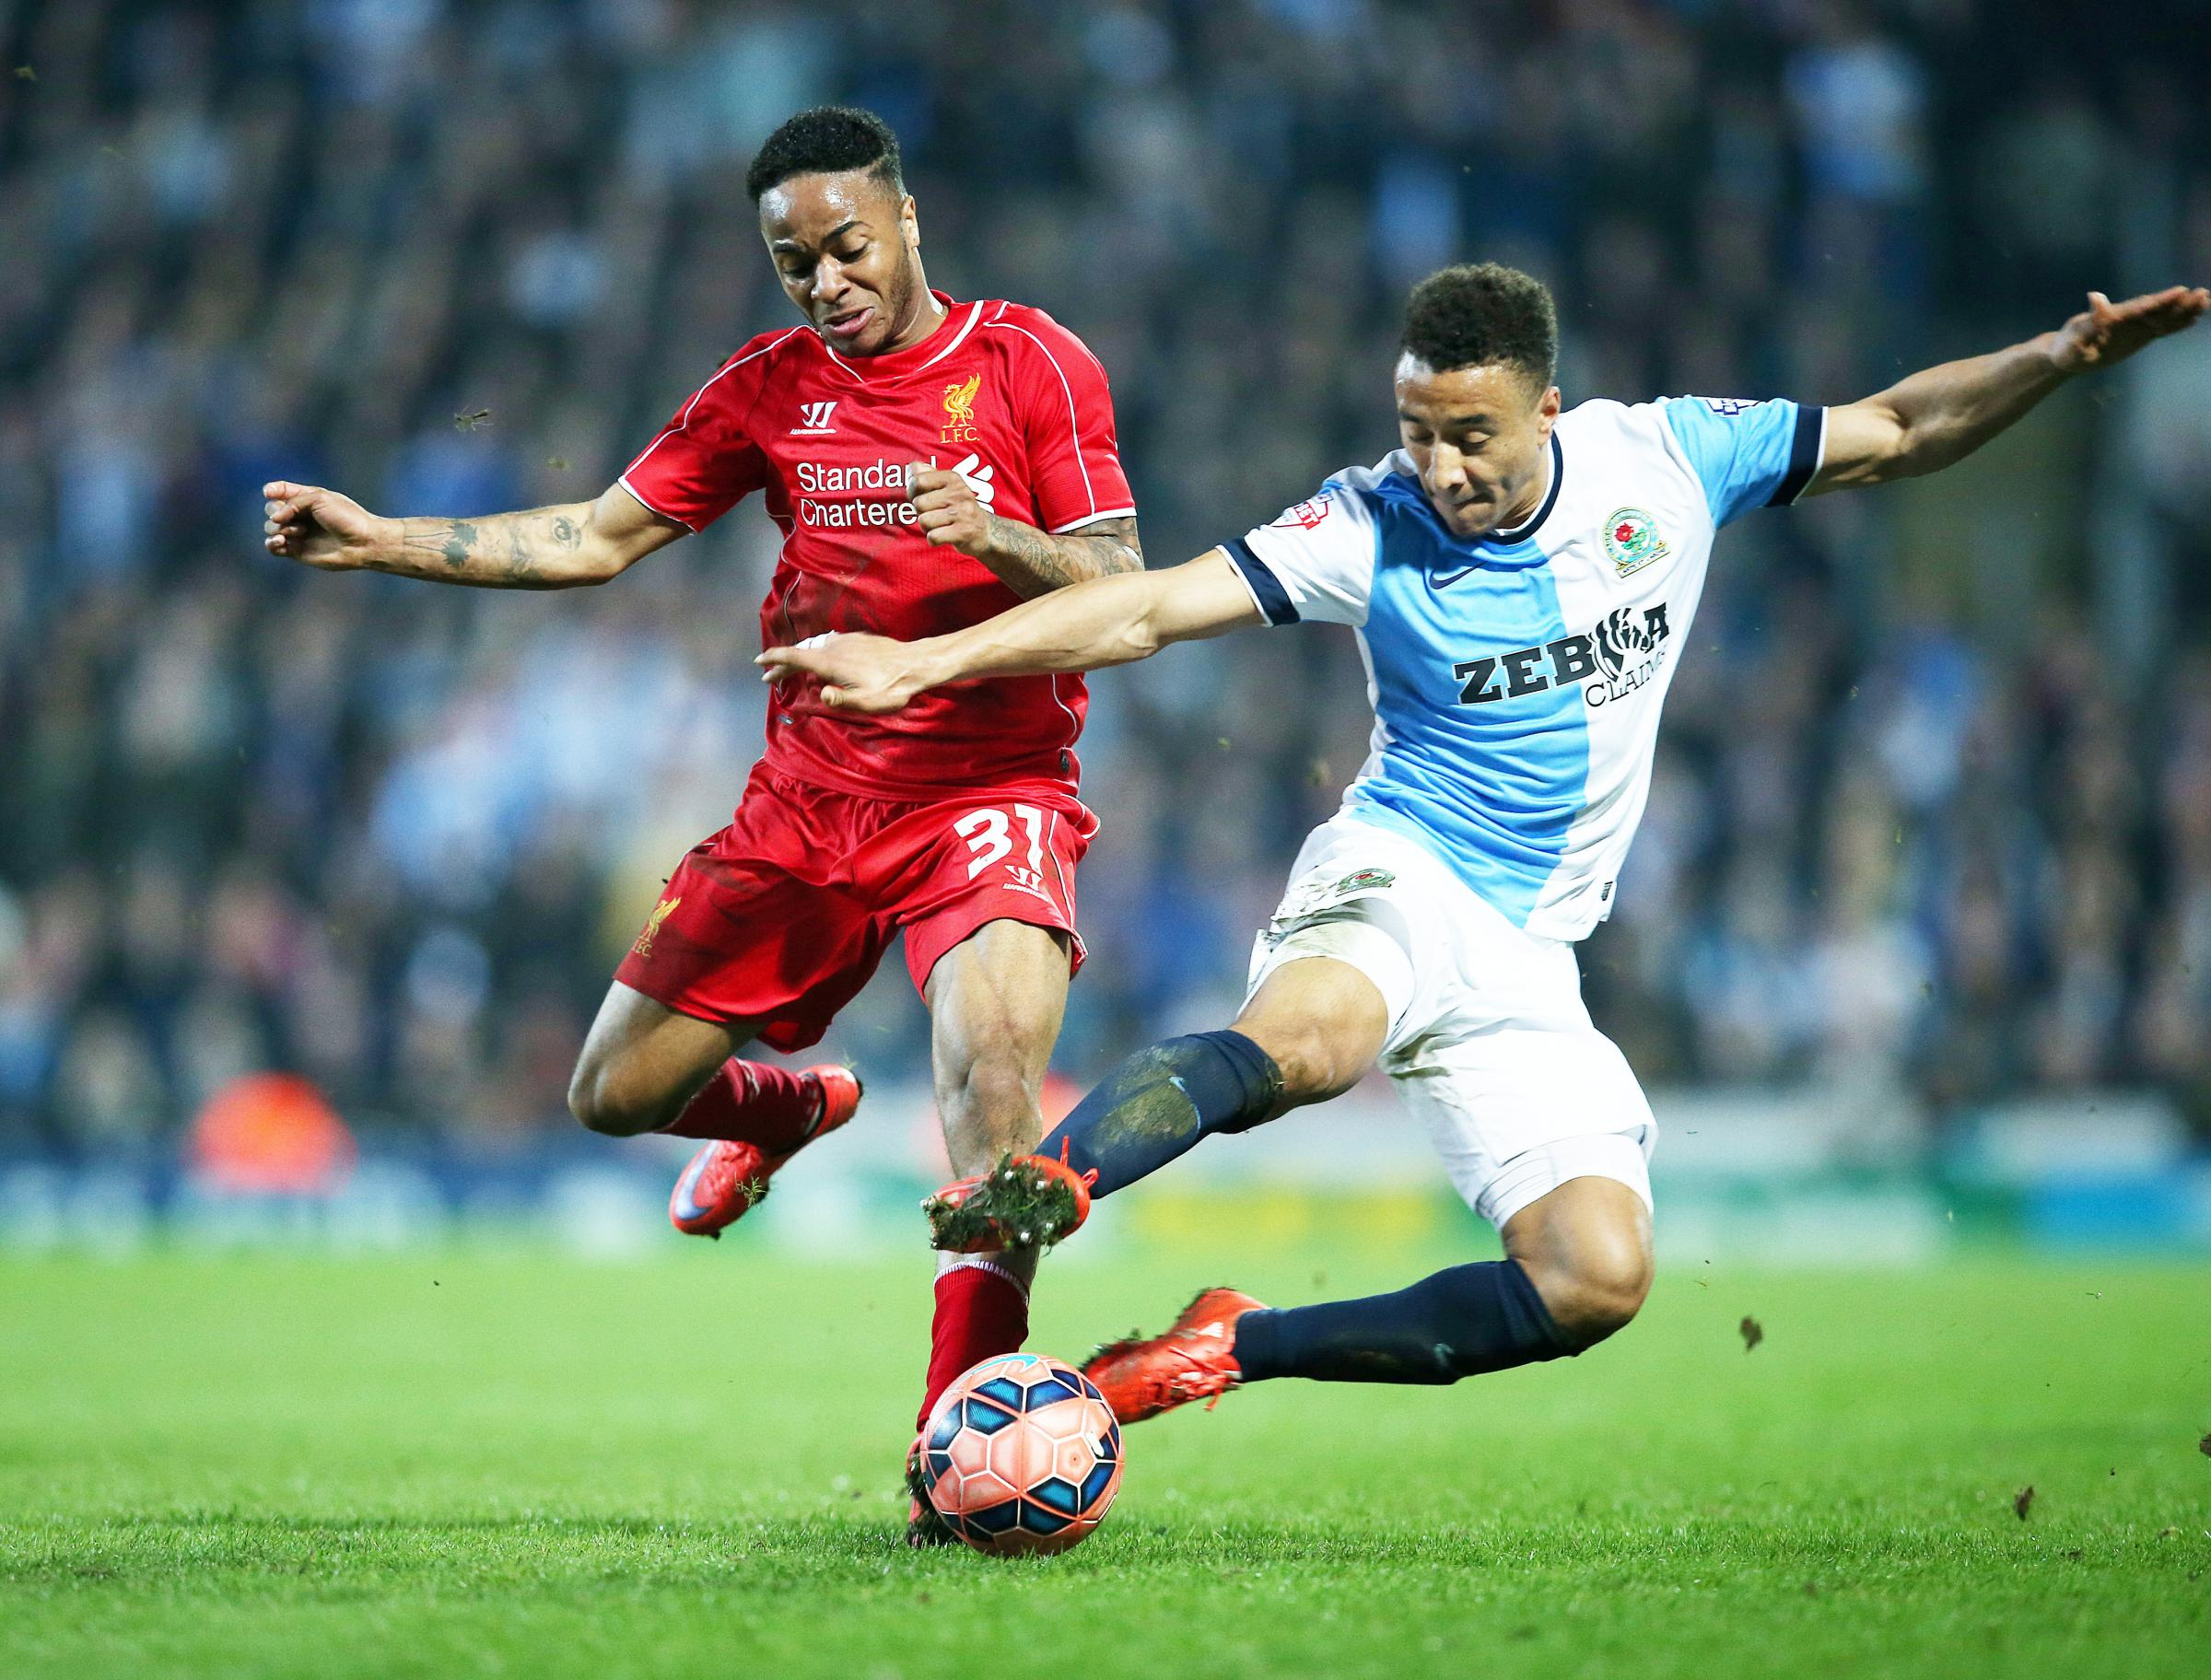 Adam Henley kept Liverpool and winger Raheem Sterling under lock and key in the FA Cup this season